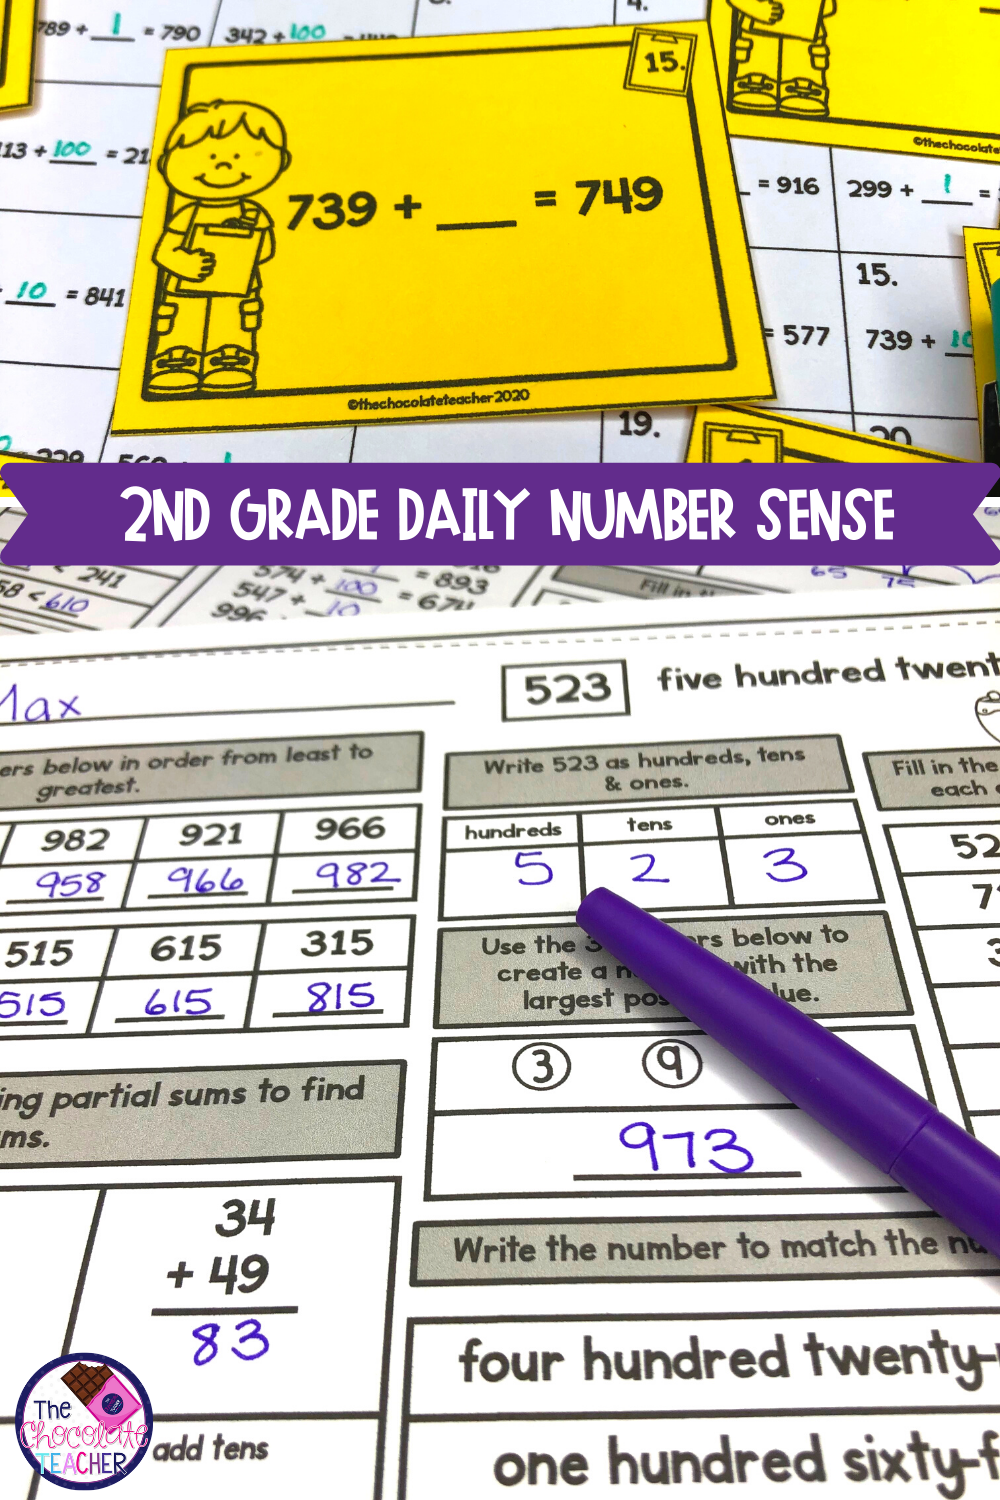 Number Sense Place Value For Second Grade Number Sense Worksheets Number Sense 2nd Grade Math